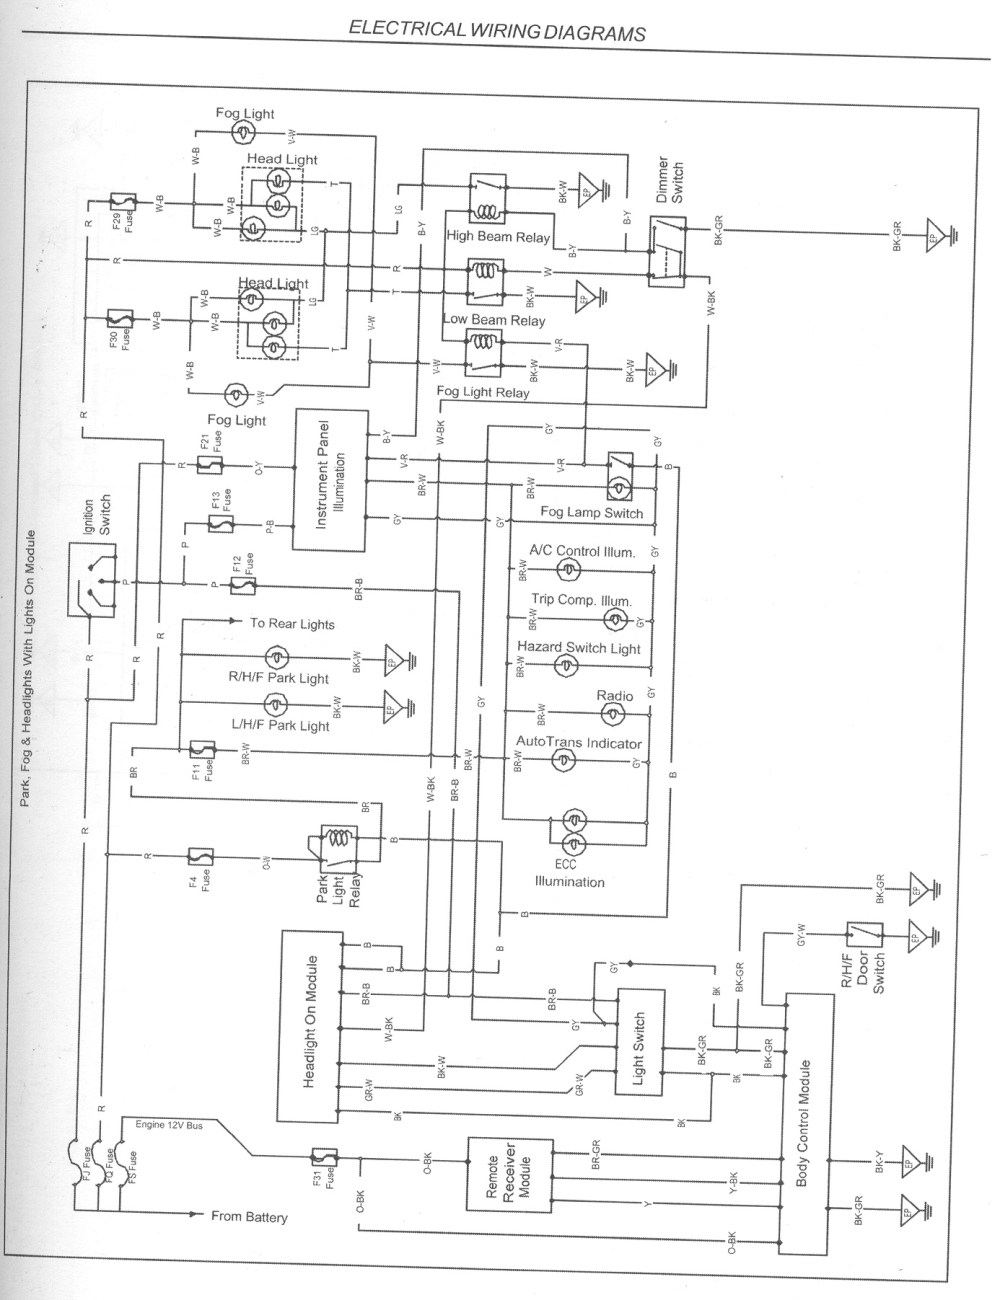 medium resolution of ve commodore wiring diagram 27 wiring diagram images